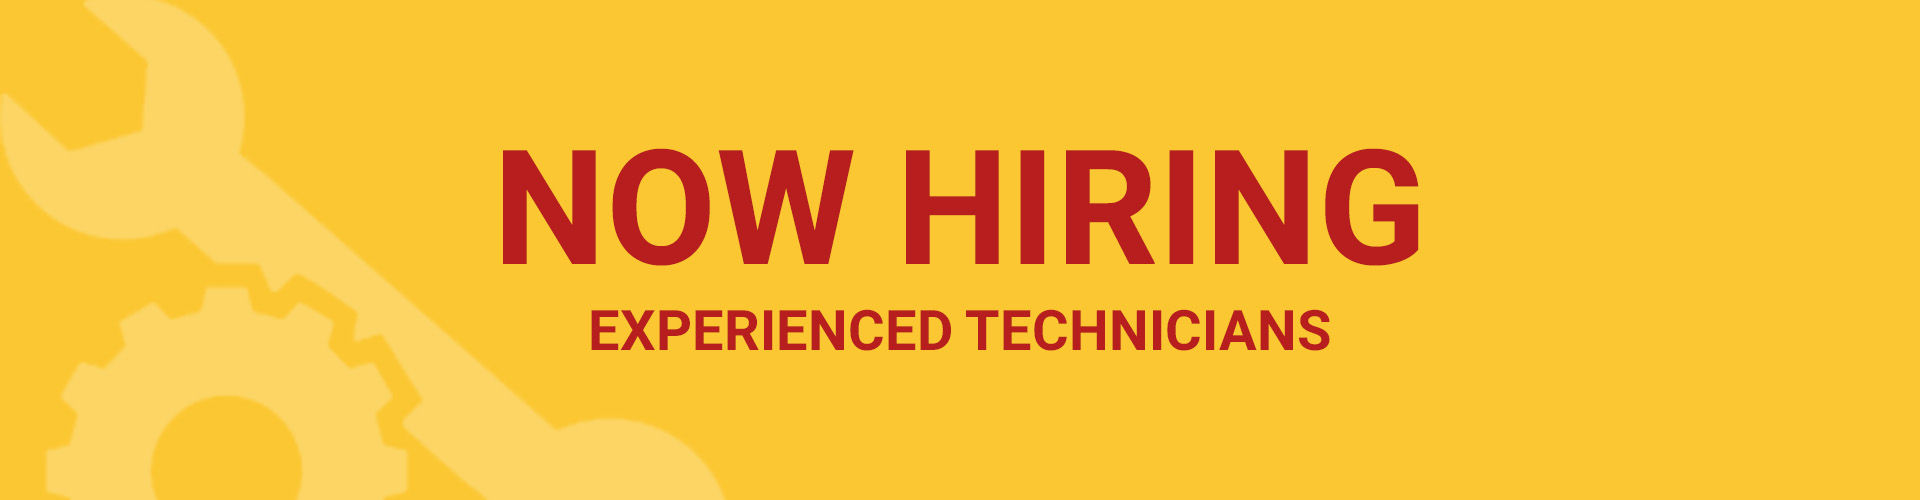 Now Hiring Experienced Technicians